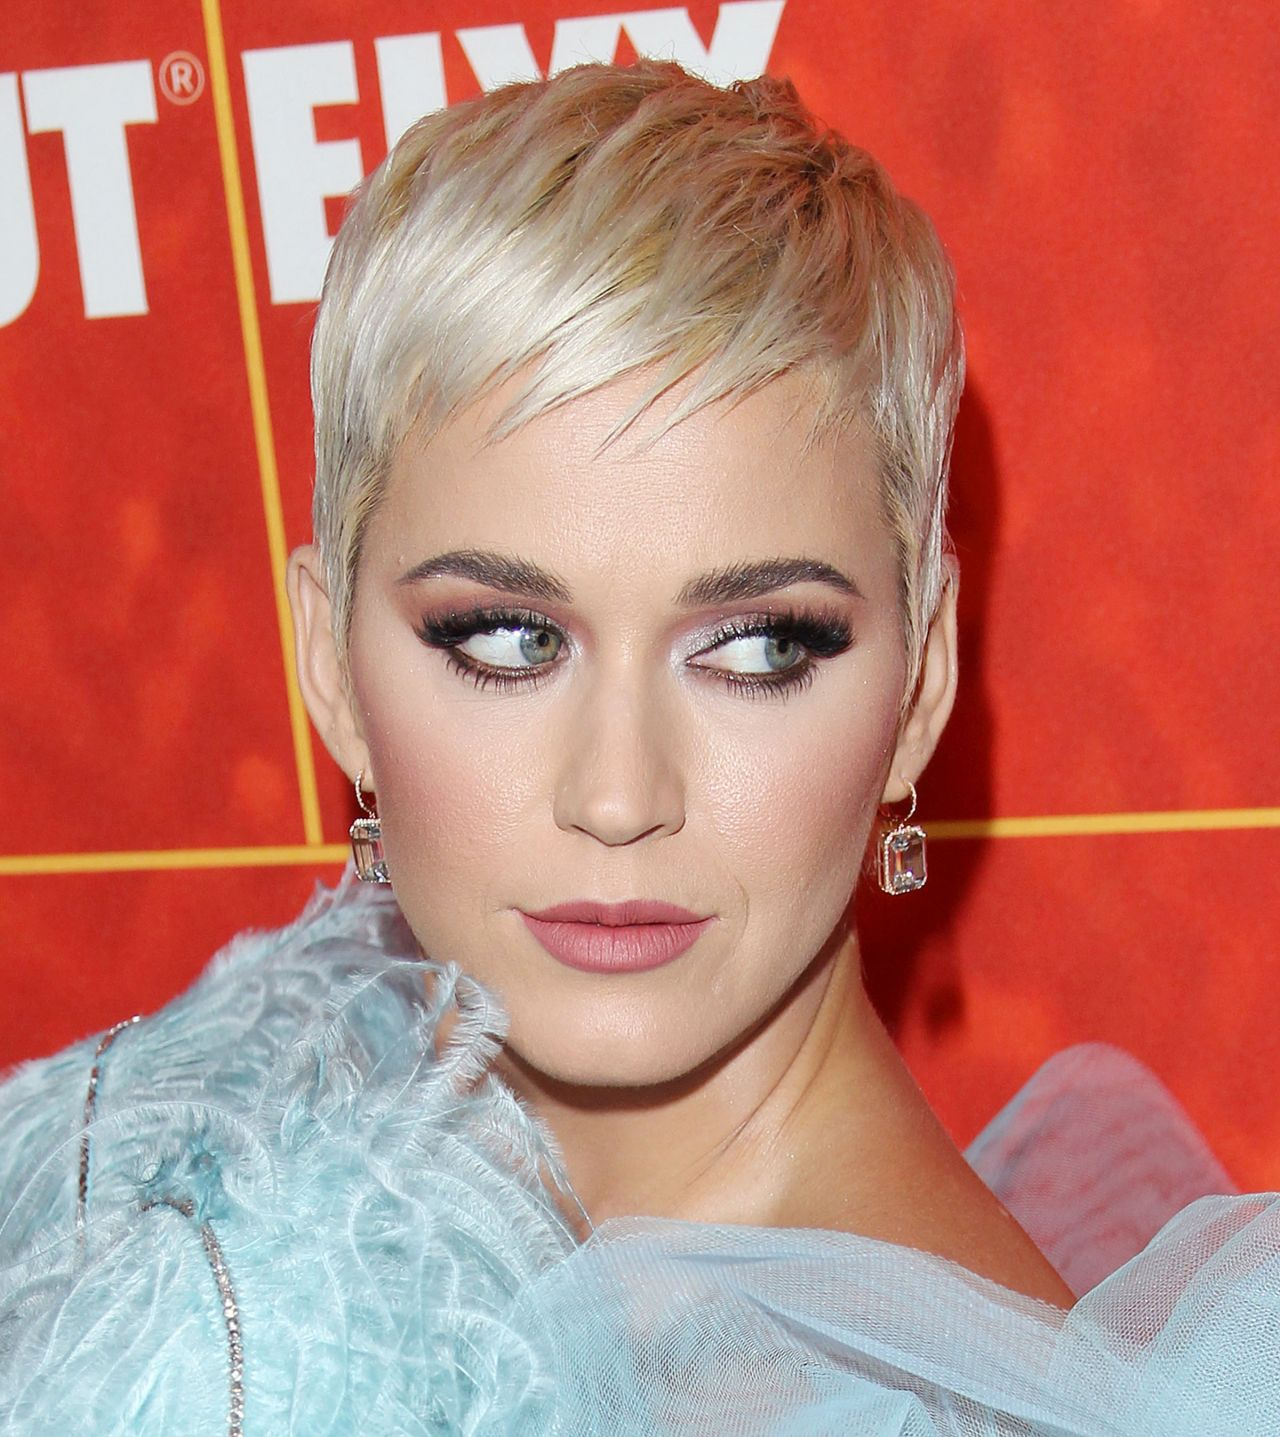 Katy Perry Talks New Music, Her New Shoe Line, and More ...